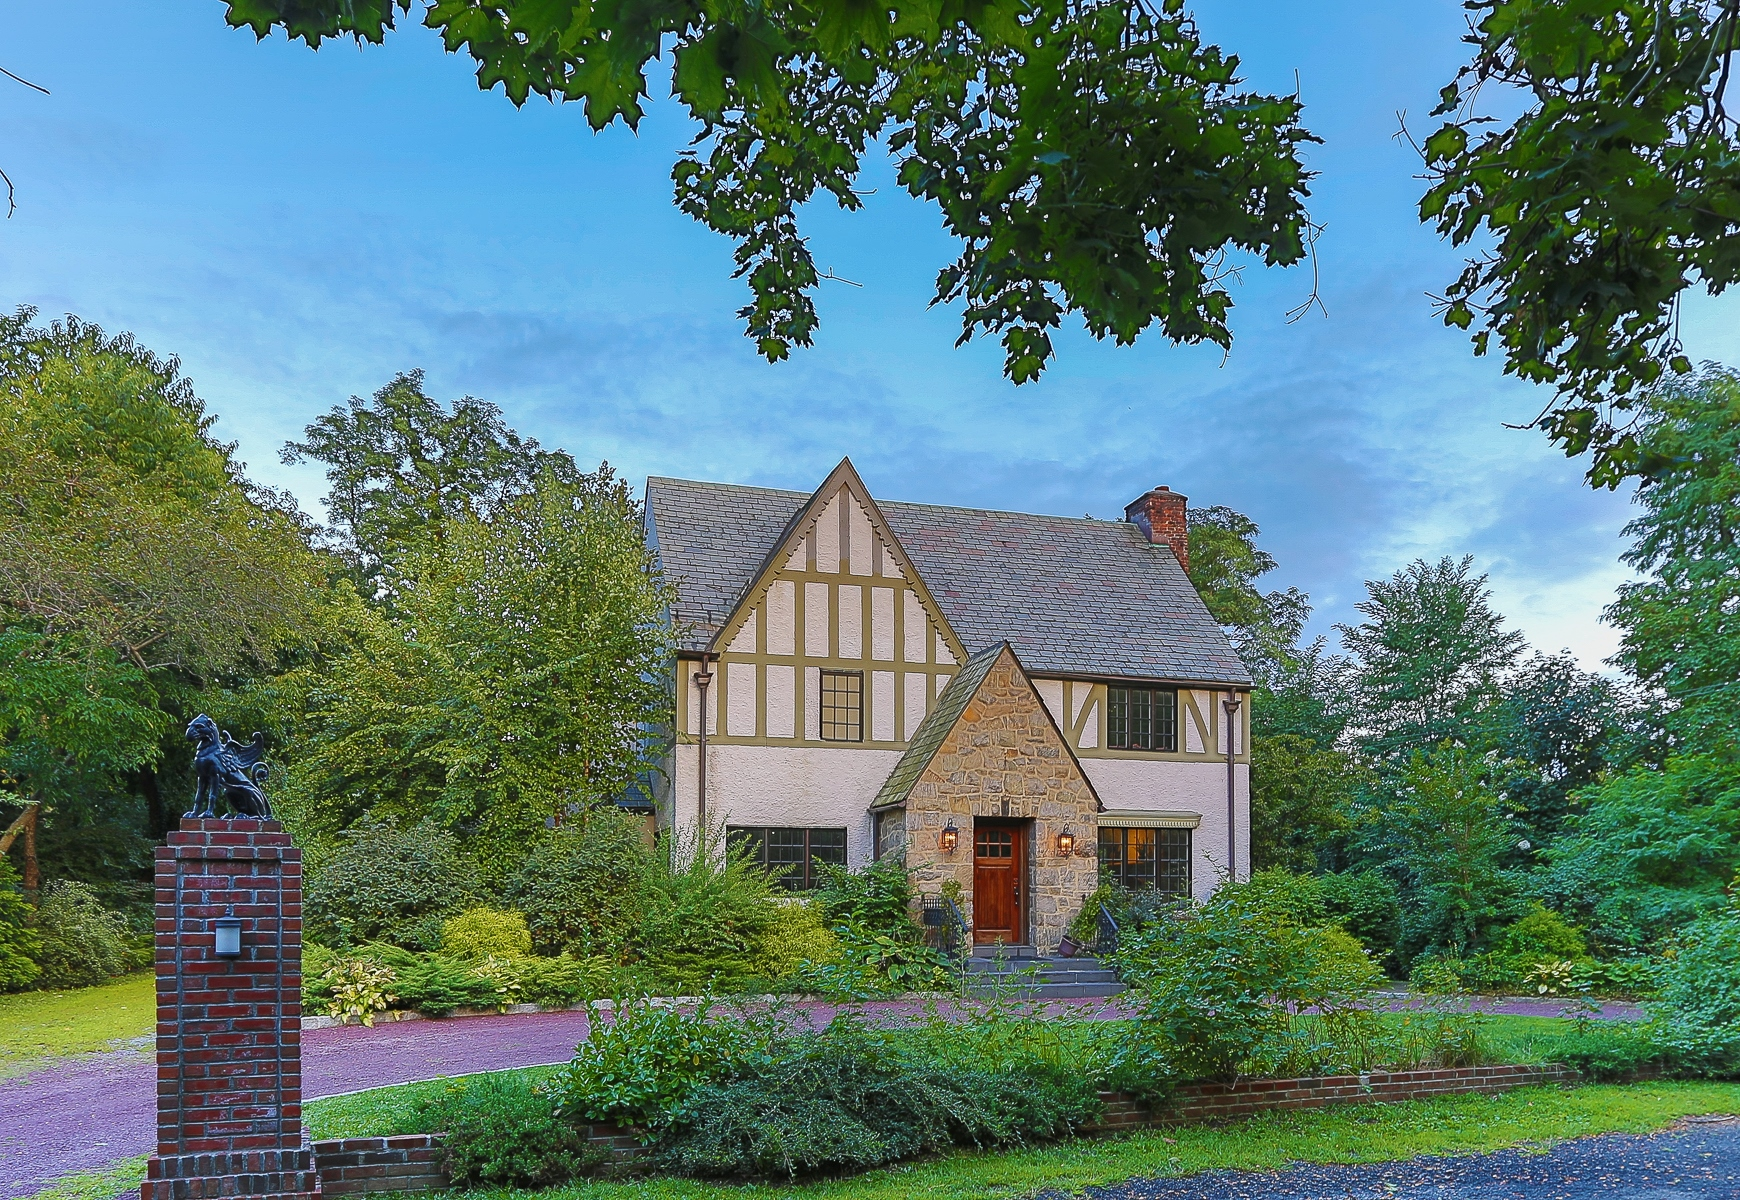 獨棟家庭住宅 為 出售 在 Restored 5 BR Stone & Stucco Tudor on 1/2 Acre 5022 Arlington Avenue Riverdale, 紐約州, 10471 美國